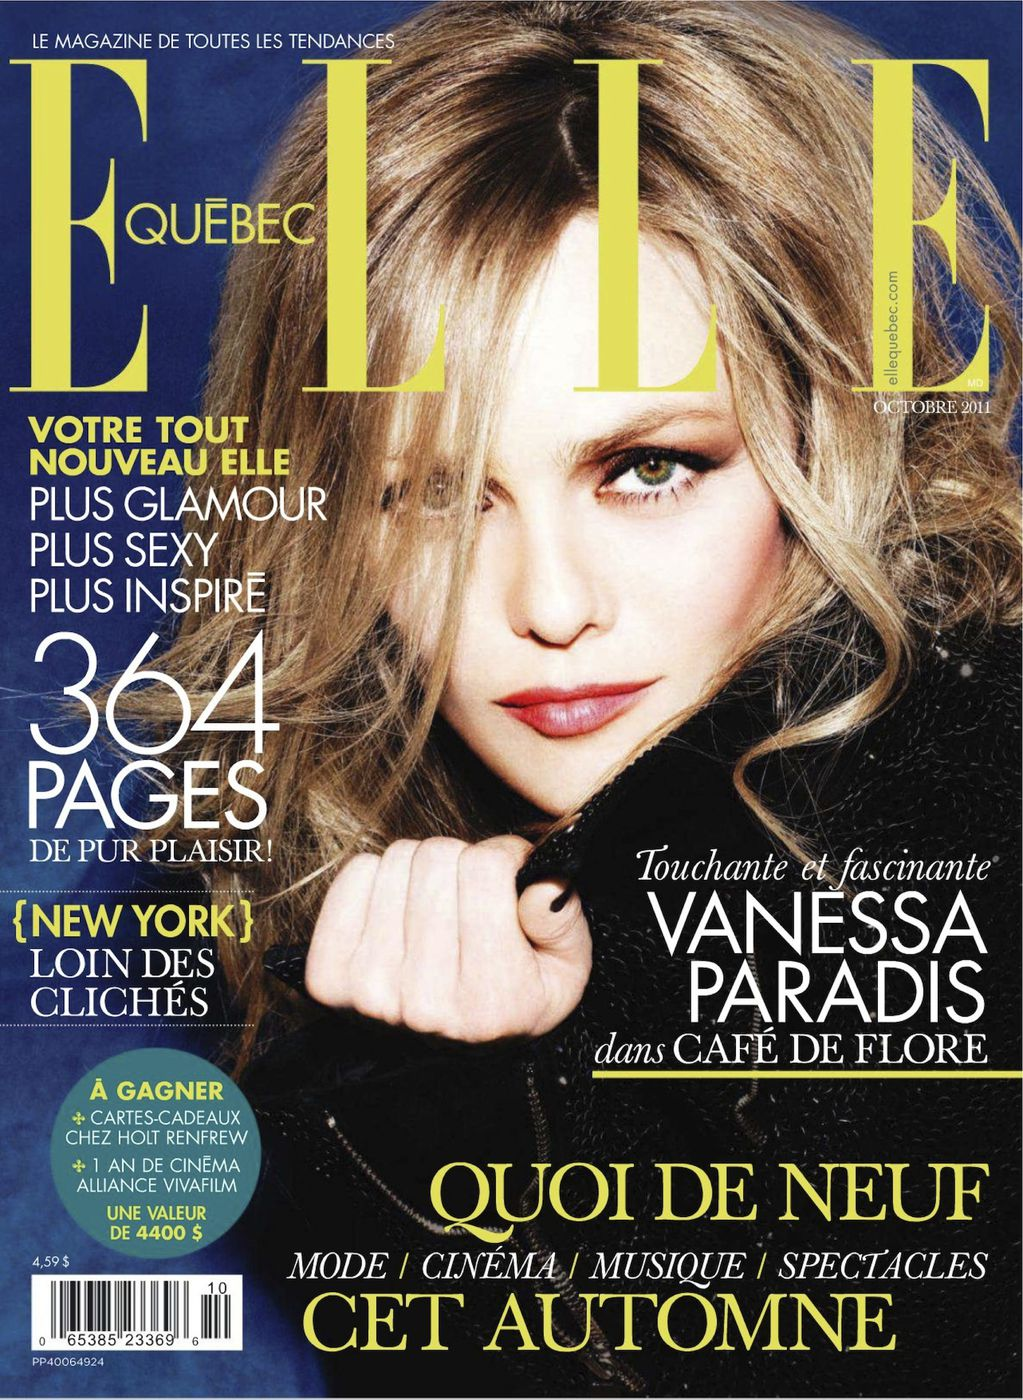 Vanessa Paradis appeared on the cover of a magazine without underwear